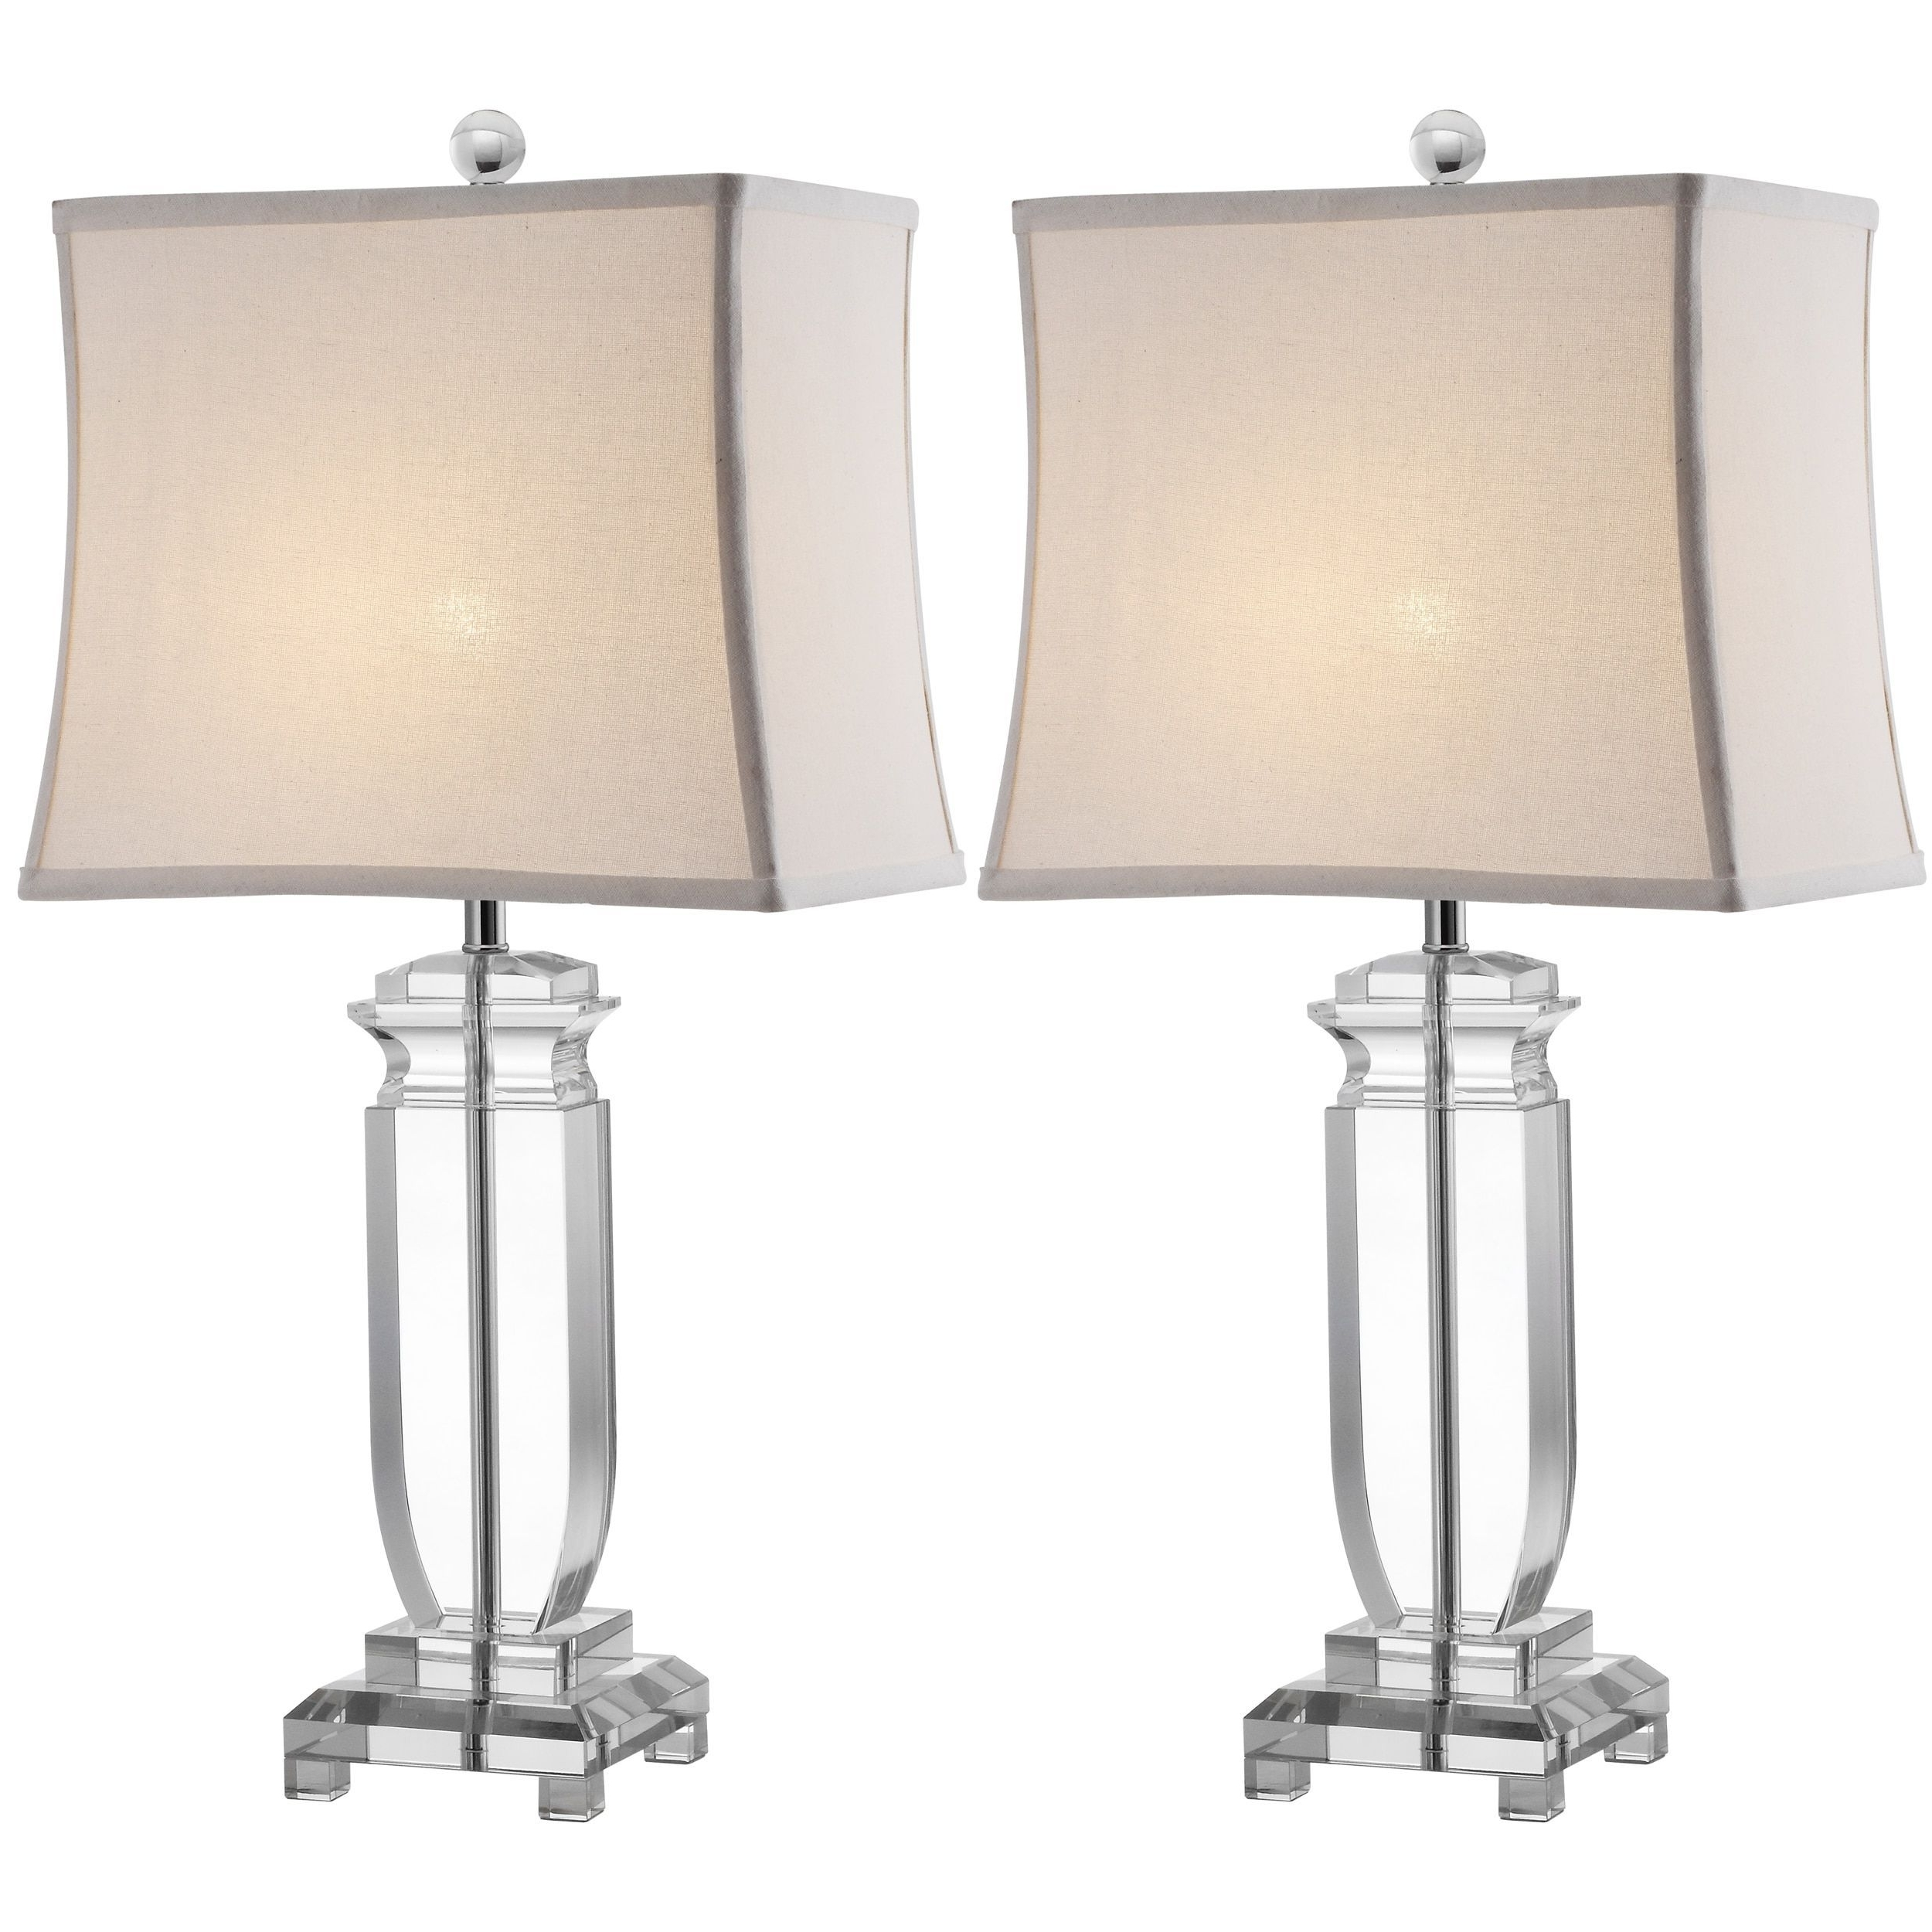 Living Room Table Lamps Sets With Regard To Famous Safavieh Lighting 25 Inch Olympia Crystal Table Lamps (set Of (View 5 of 20)